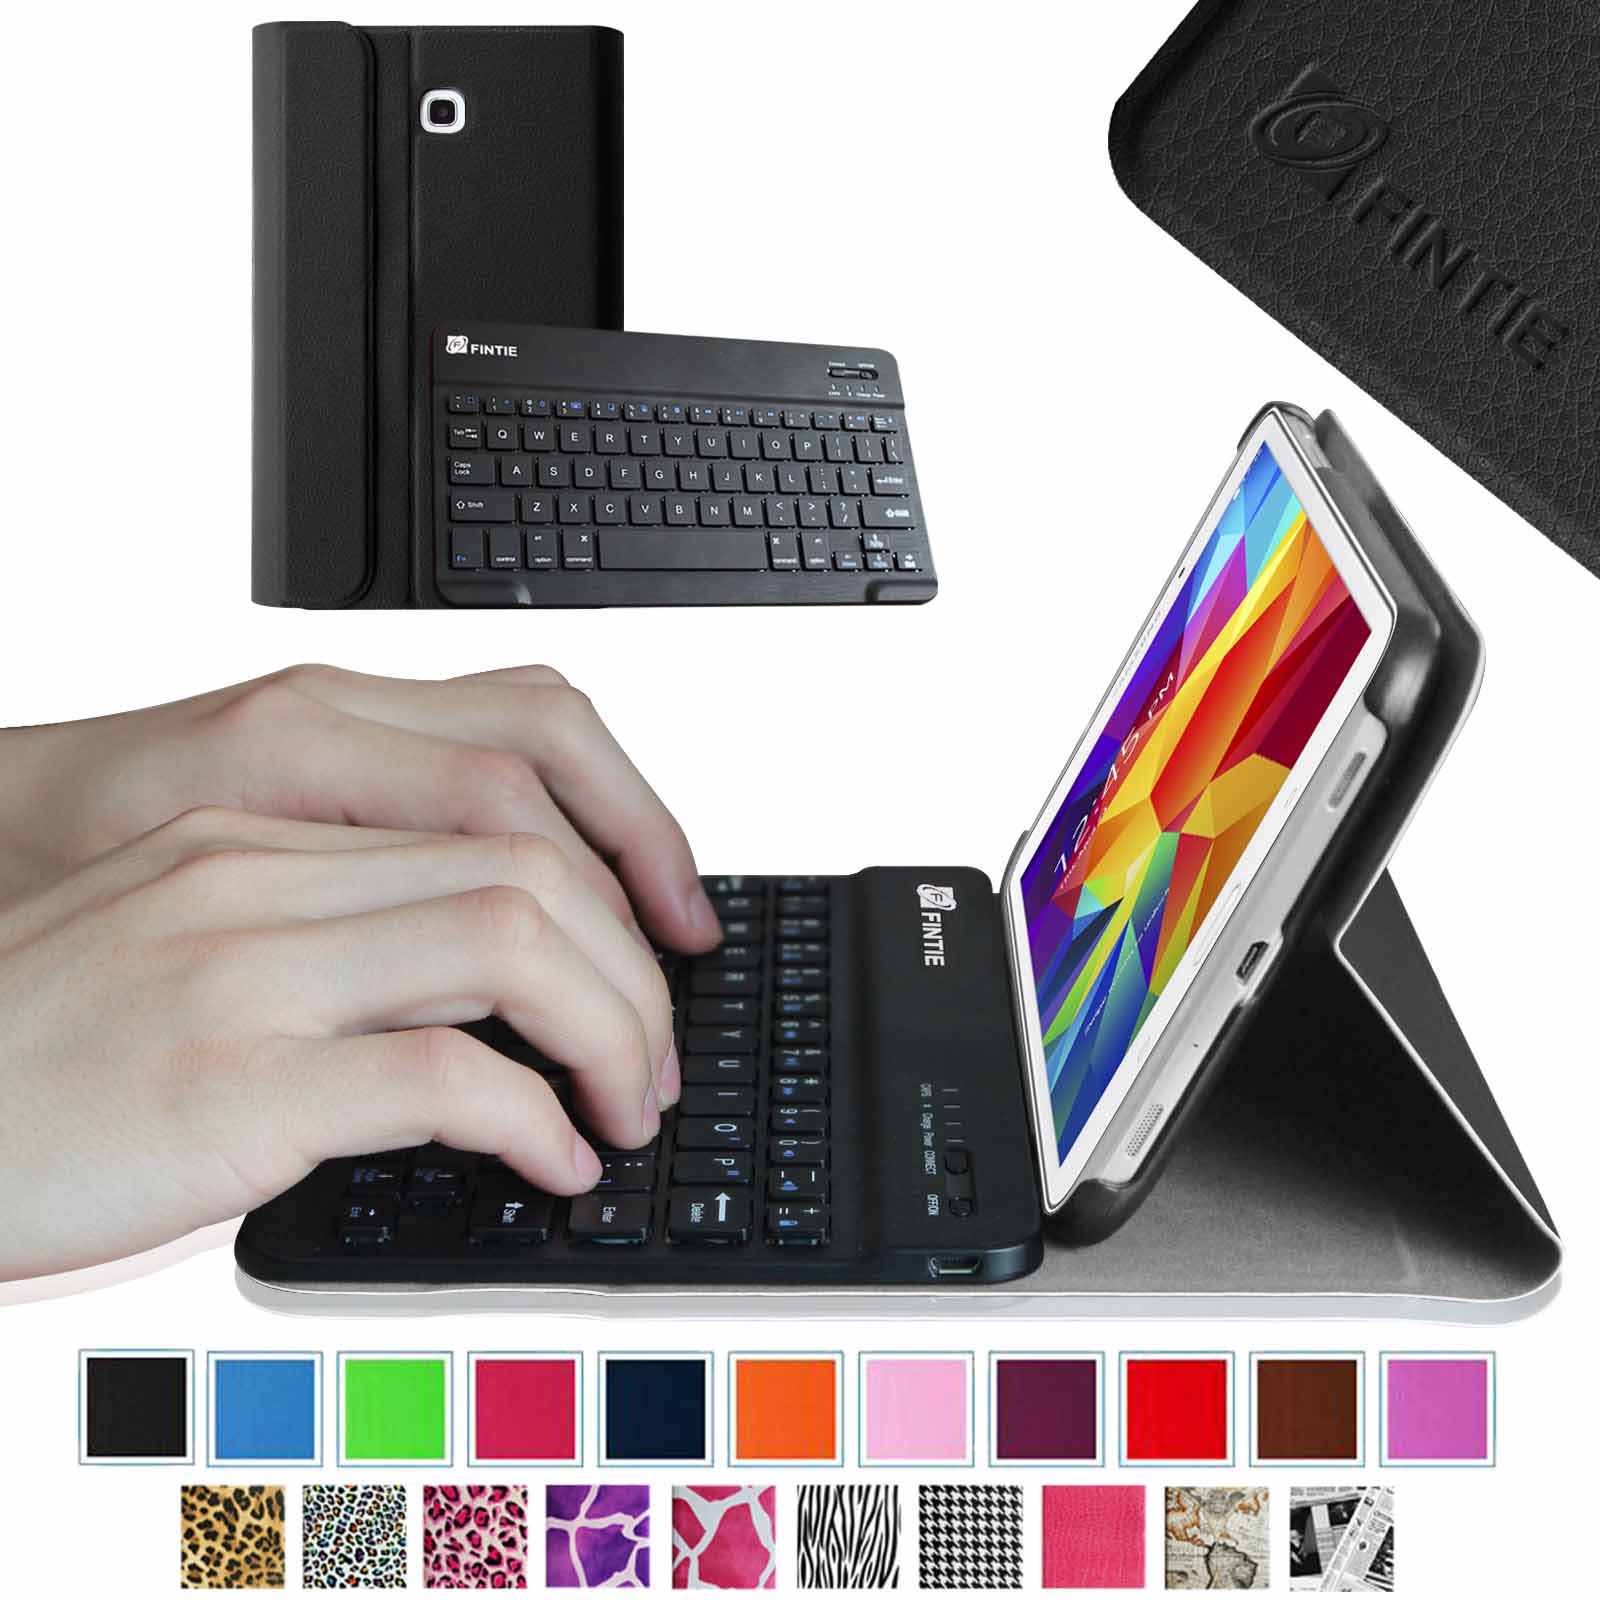 Samsung Galaxy Tab 4 8.0 Keyboard Case - Fintie Smart Cover with Magnetically Detachable Bluetooth Keyboard, Black